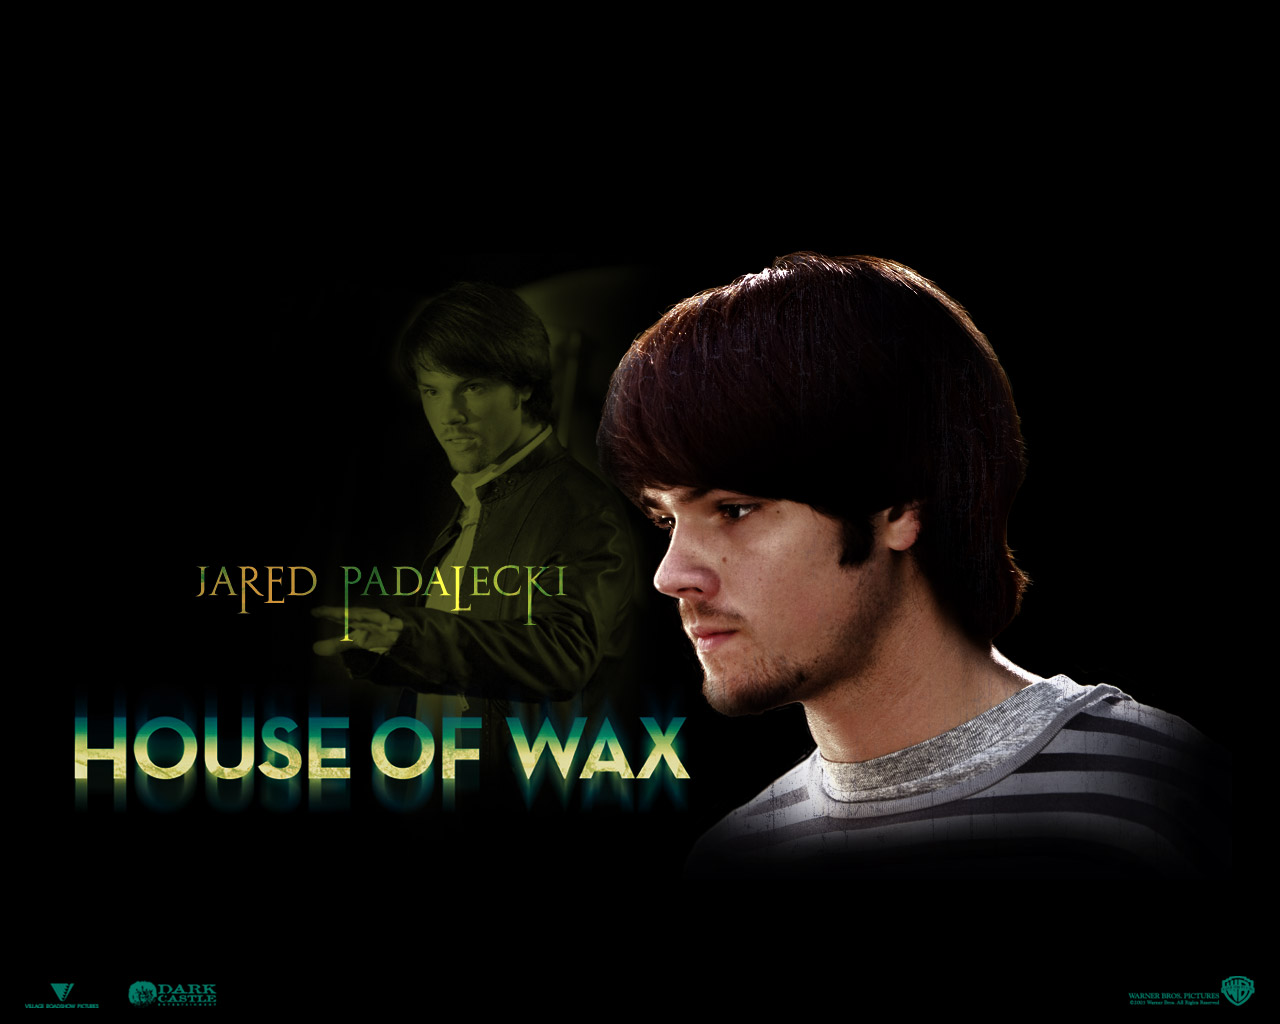 House of wax 4